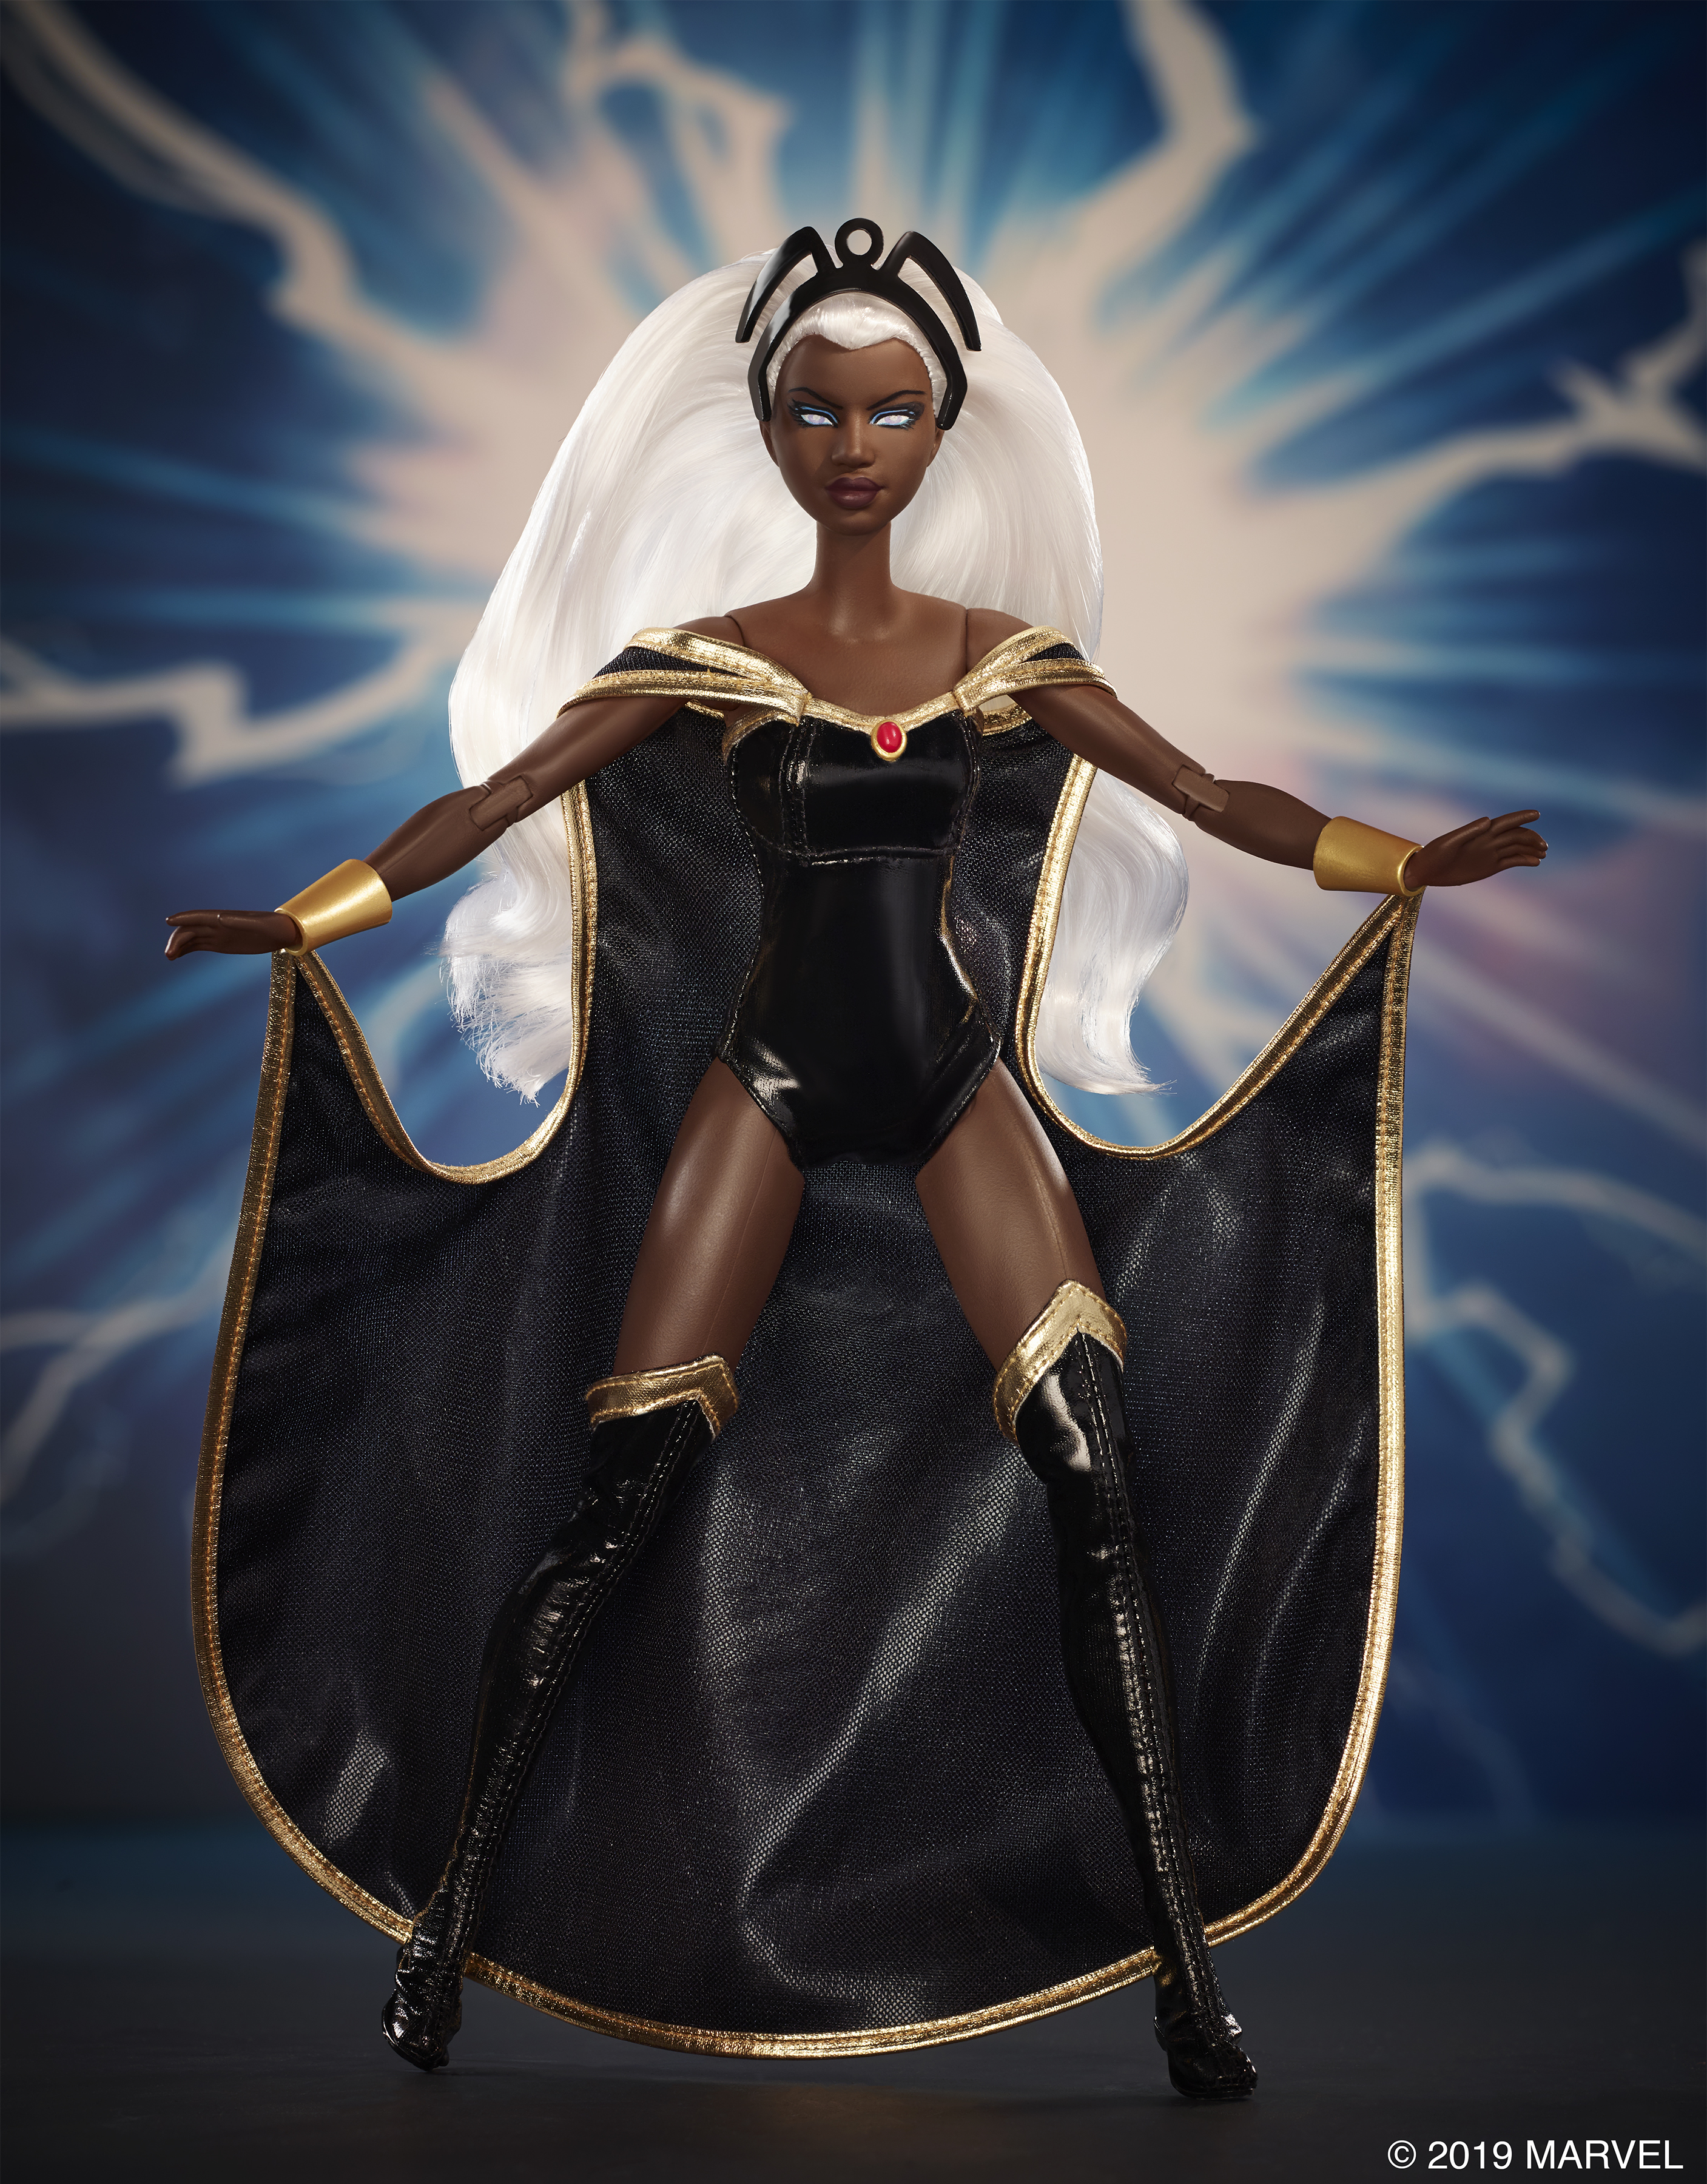 A Storm Barbie posed against a blue lightning background